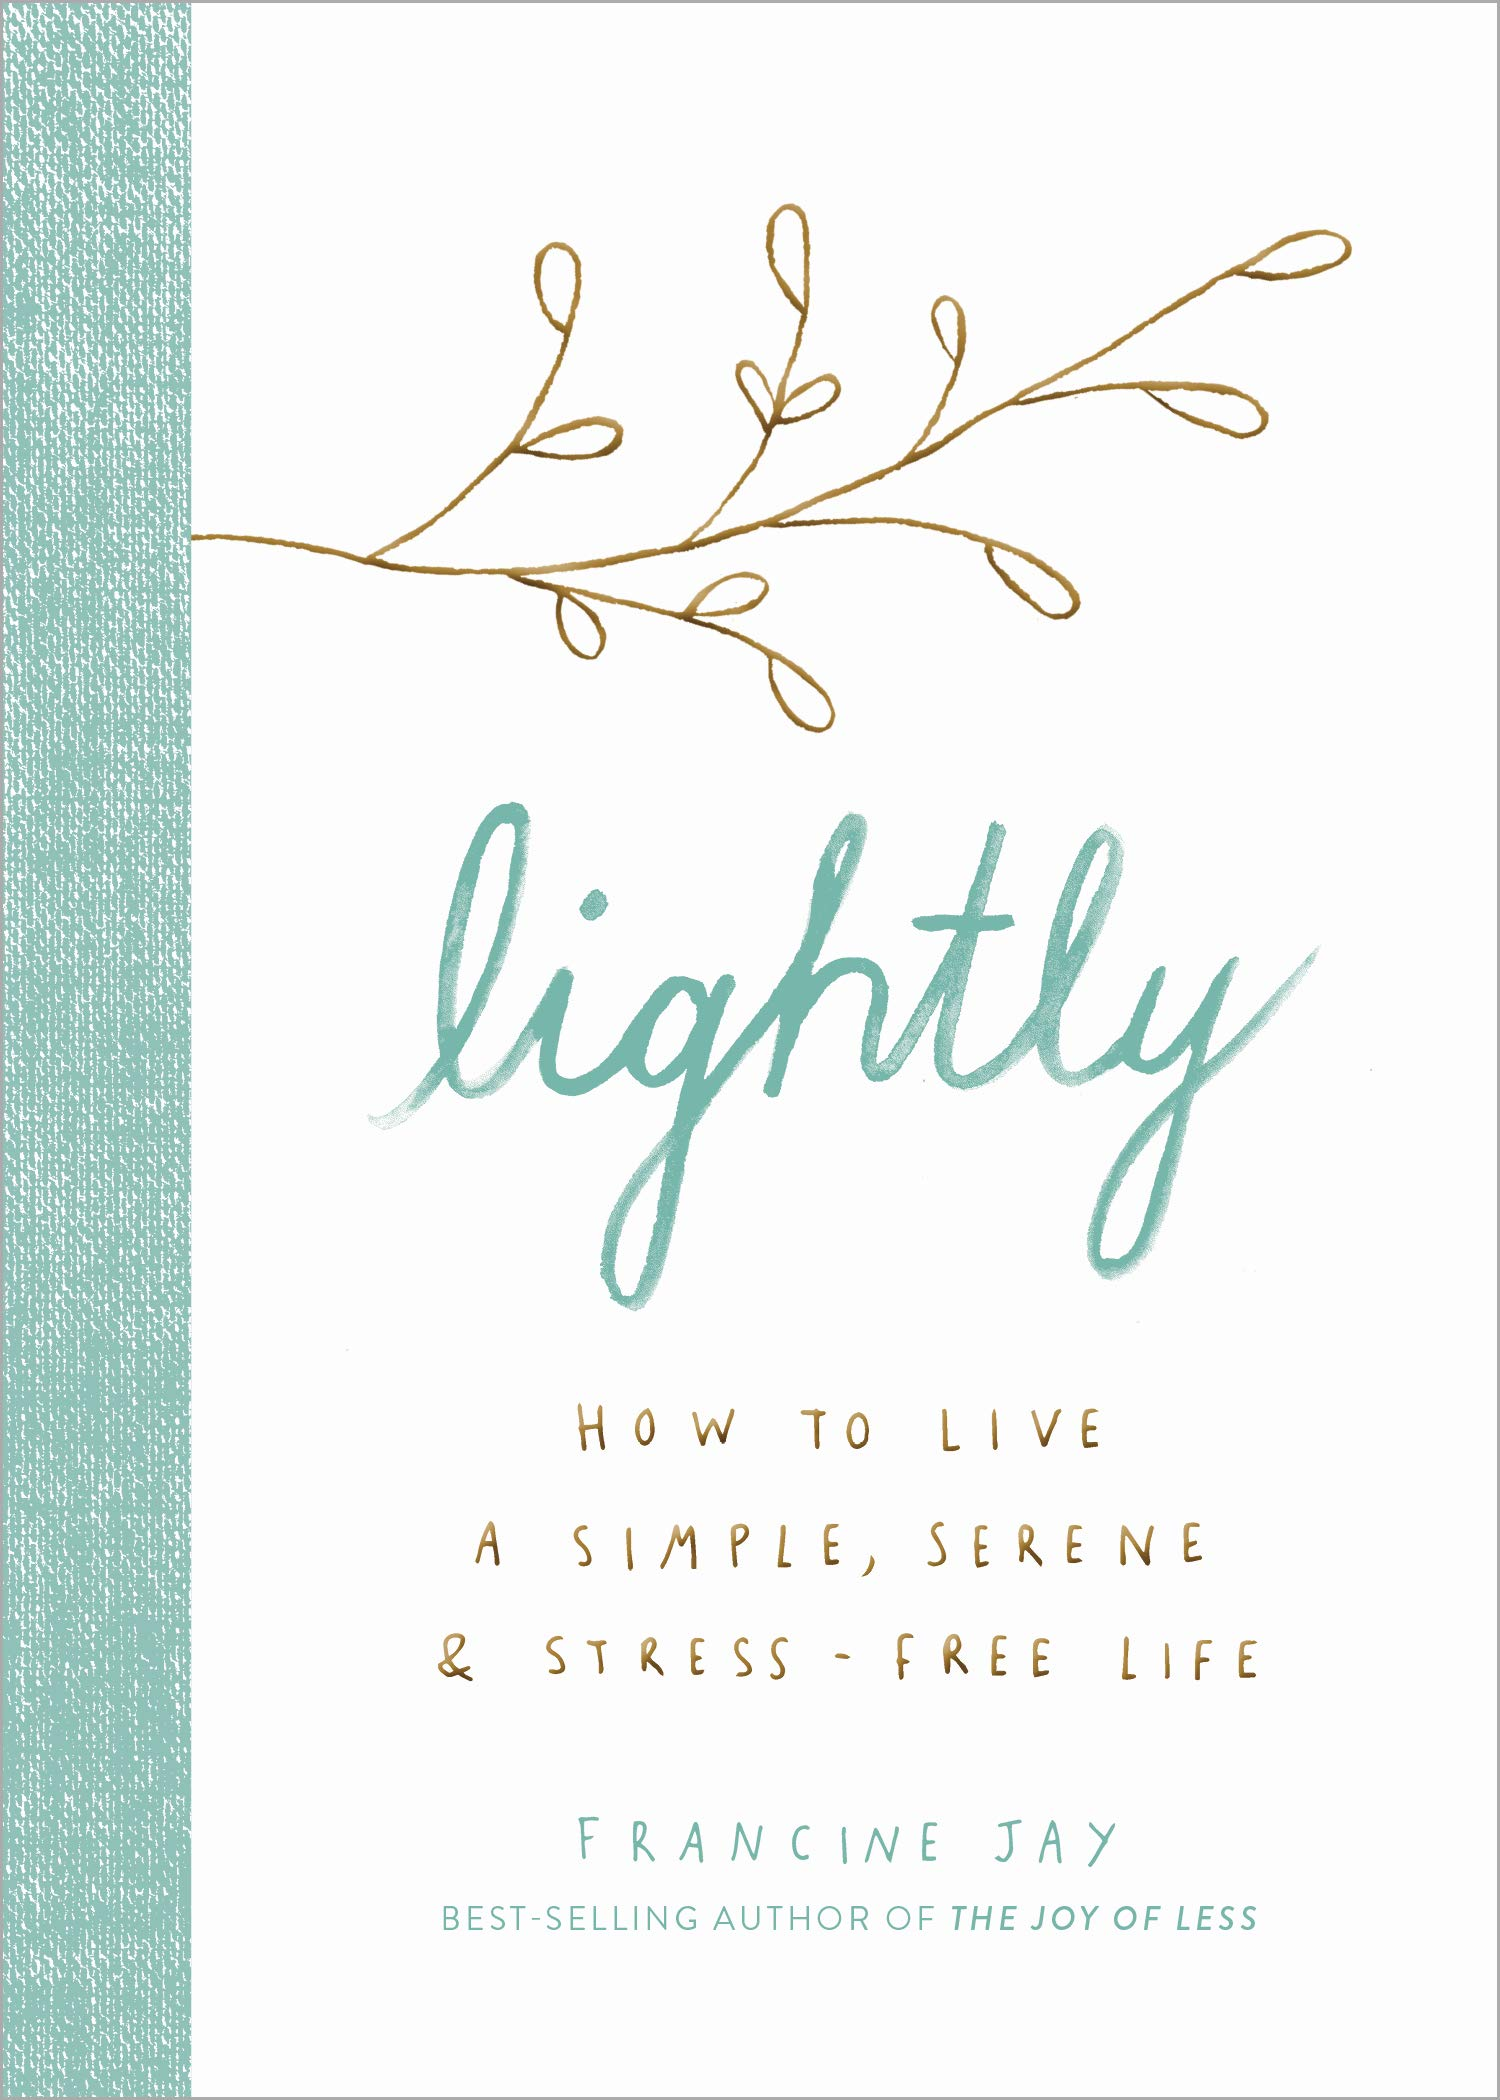 Francine Jay  - Lightly: How to Live a Simple, Serene, and Stress-free Life